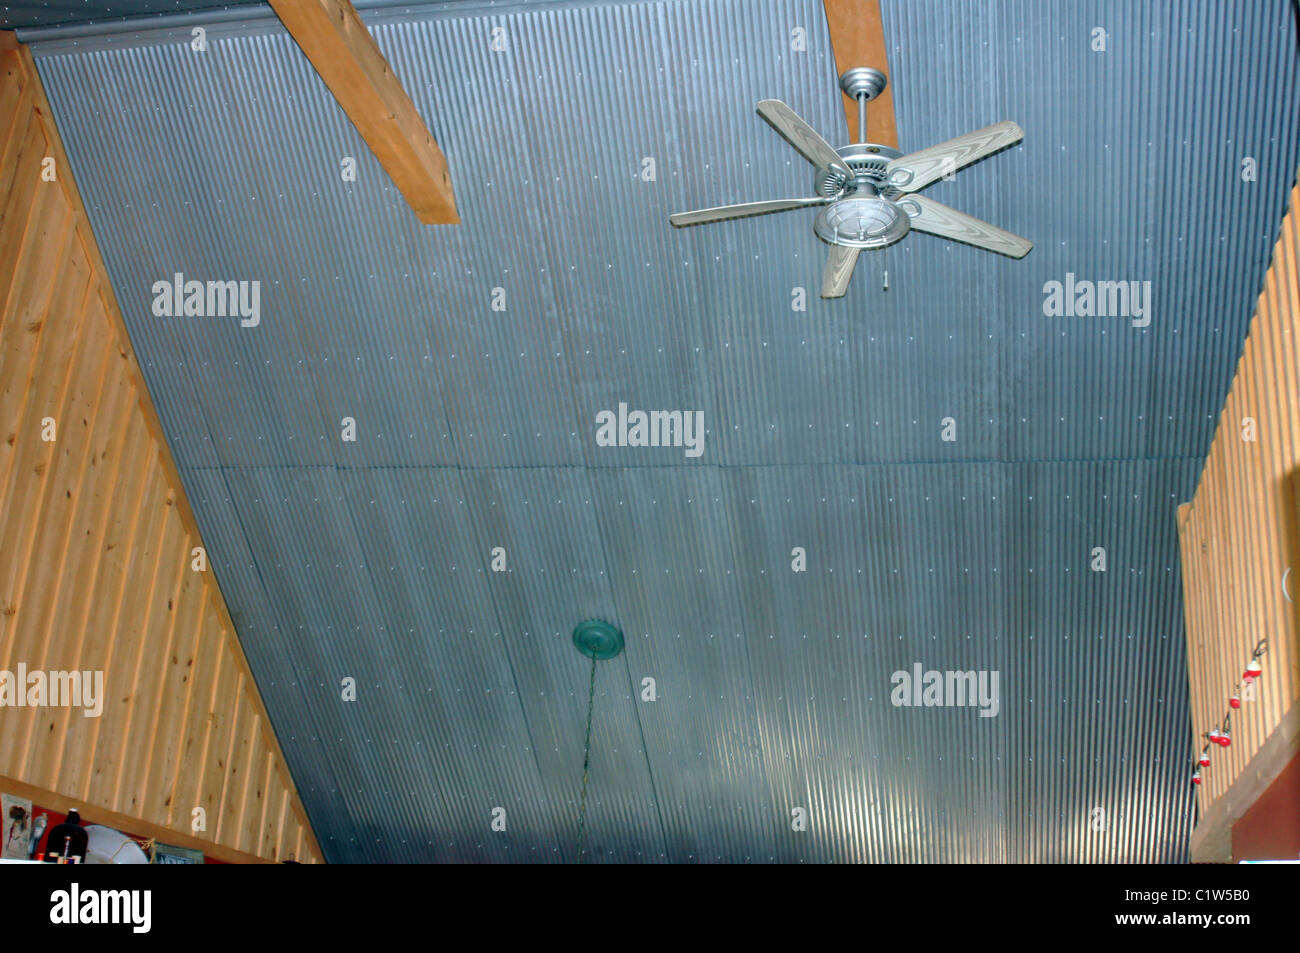 Photo Of A Corrugated Tin Ceiling And Ceiling Fan In A River Cabin In  Arkansas